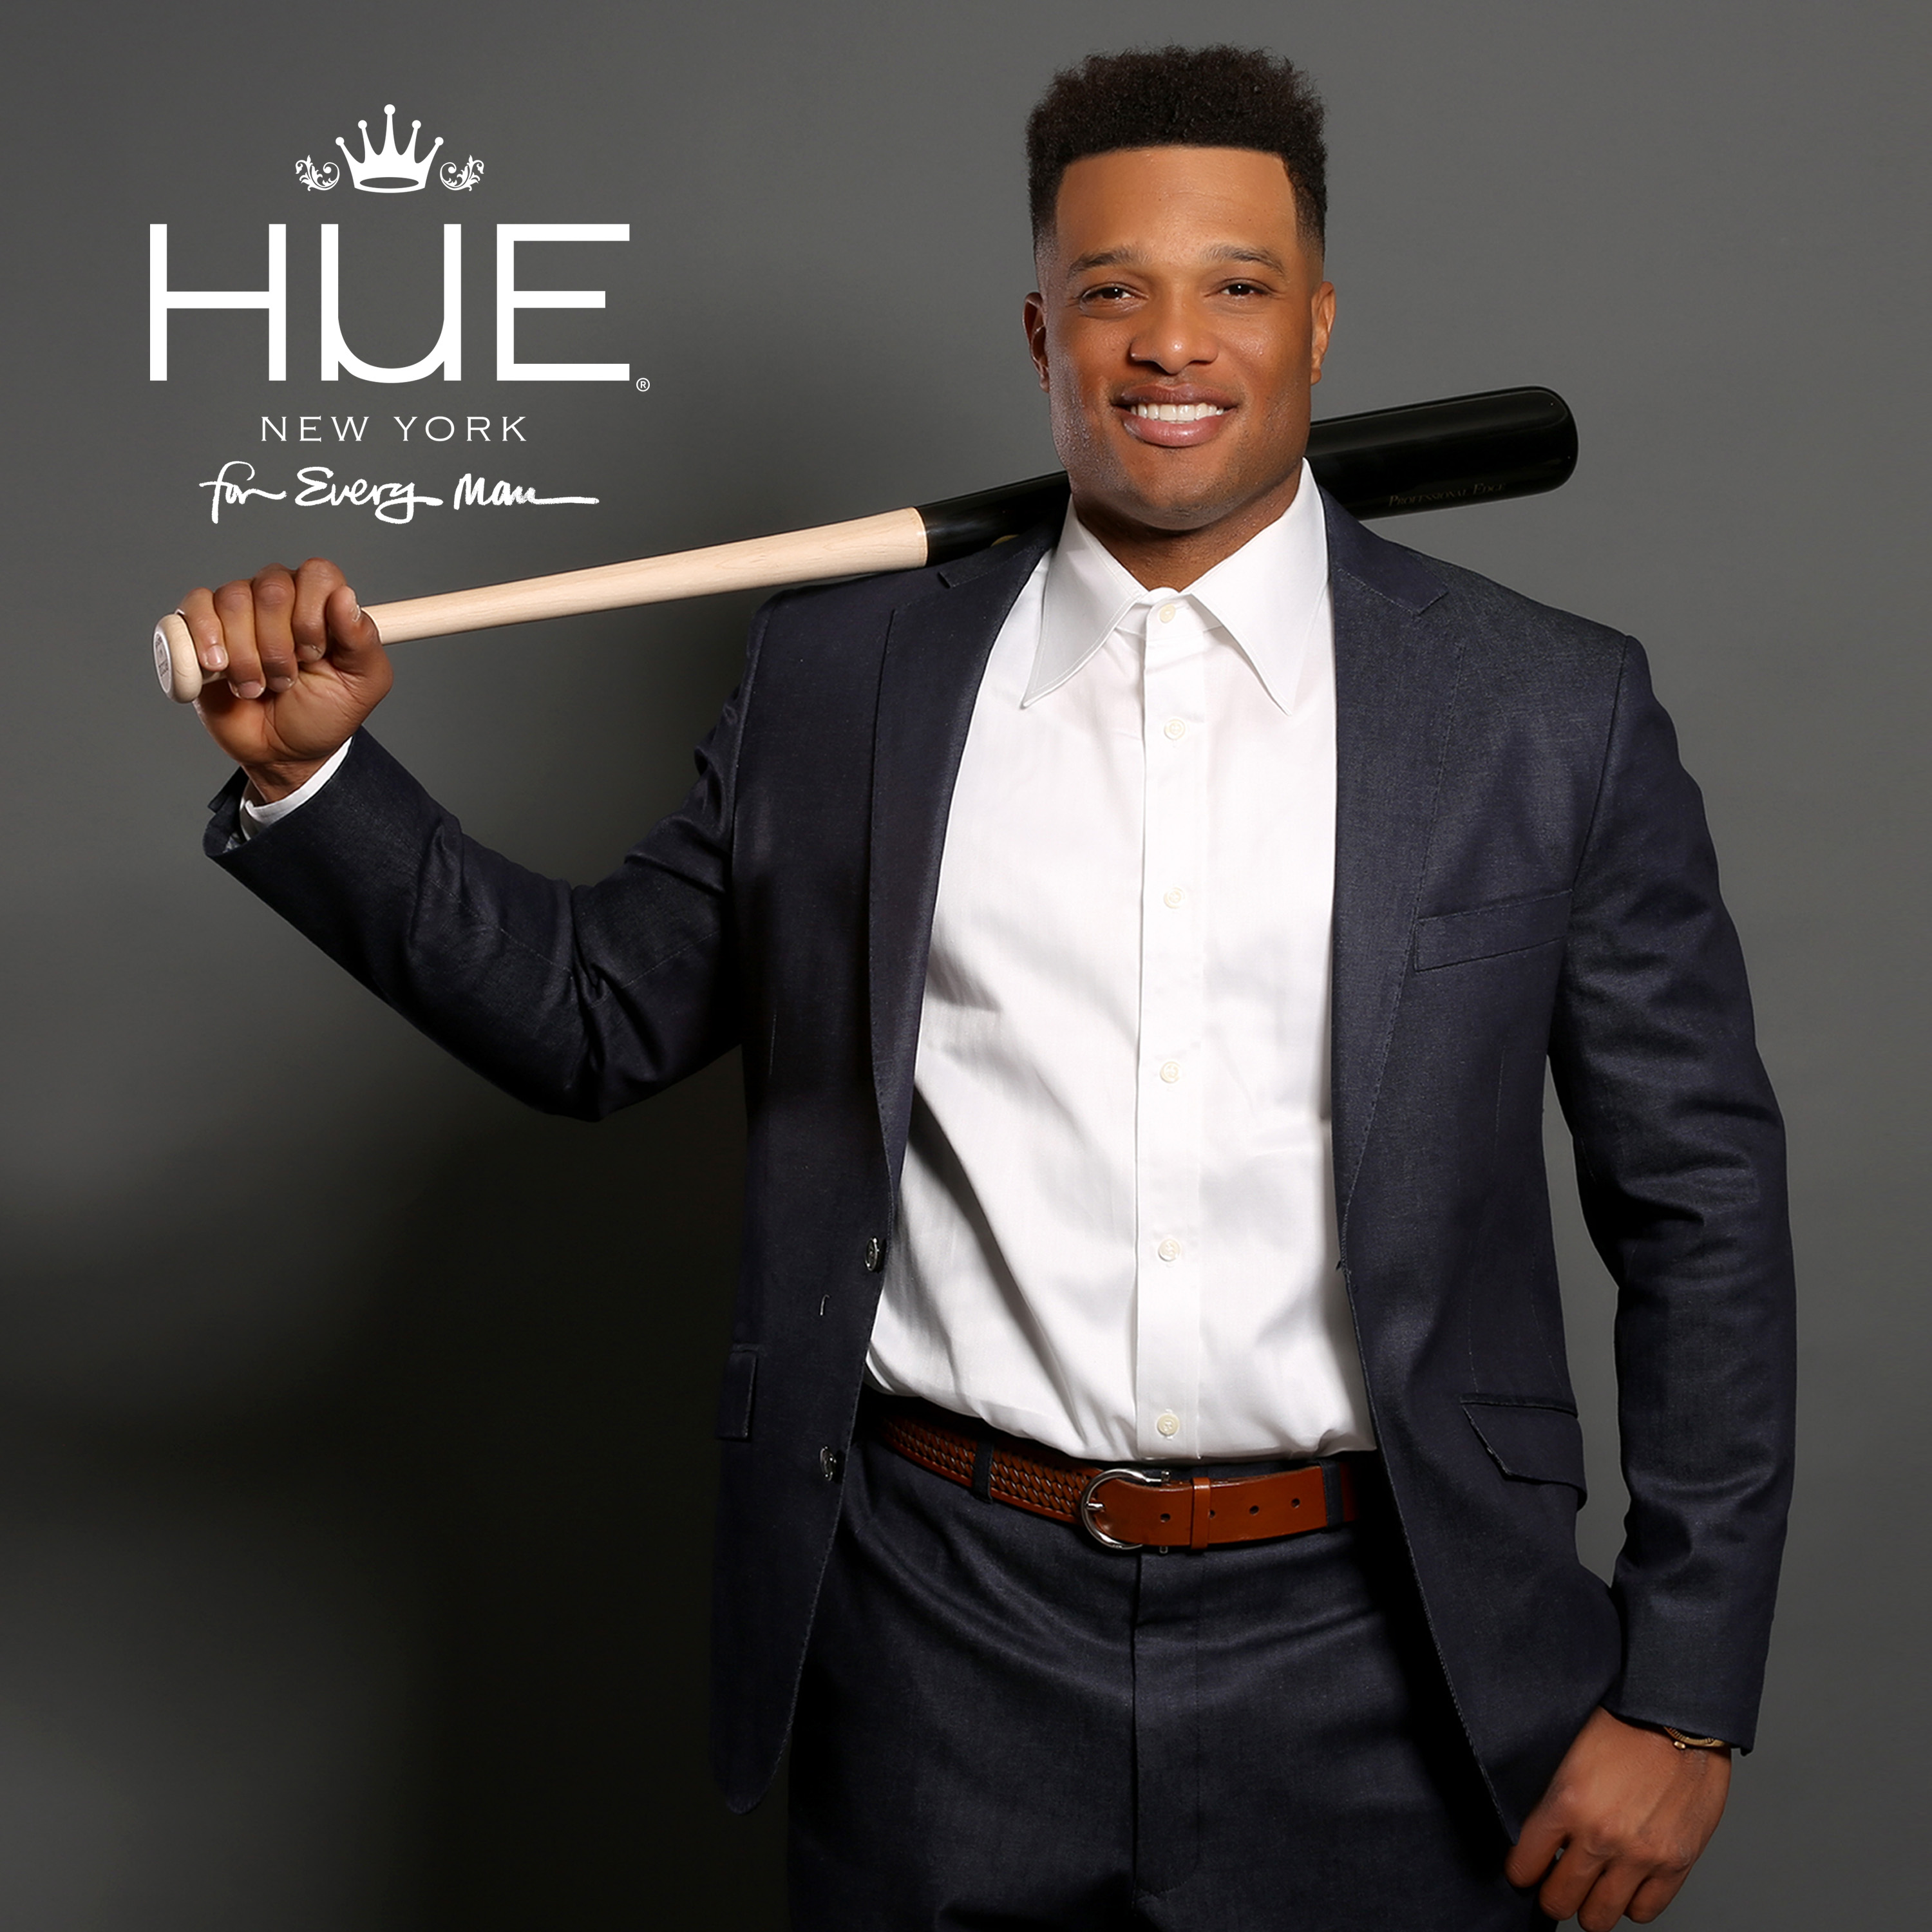 5 Questions With MLB Star Robinson Cano, Talks Partnership With Hue For Every Man Grooming Brand And More